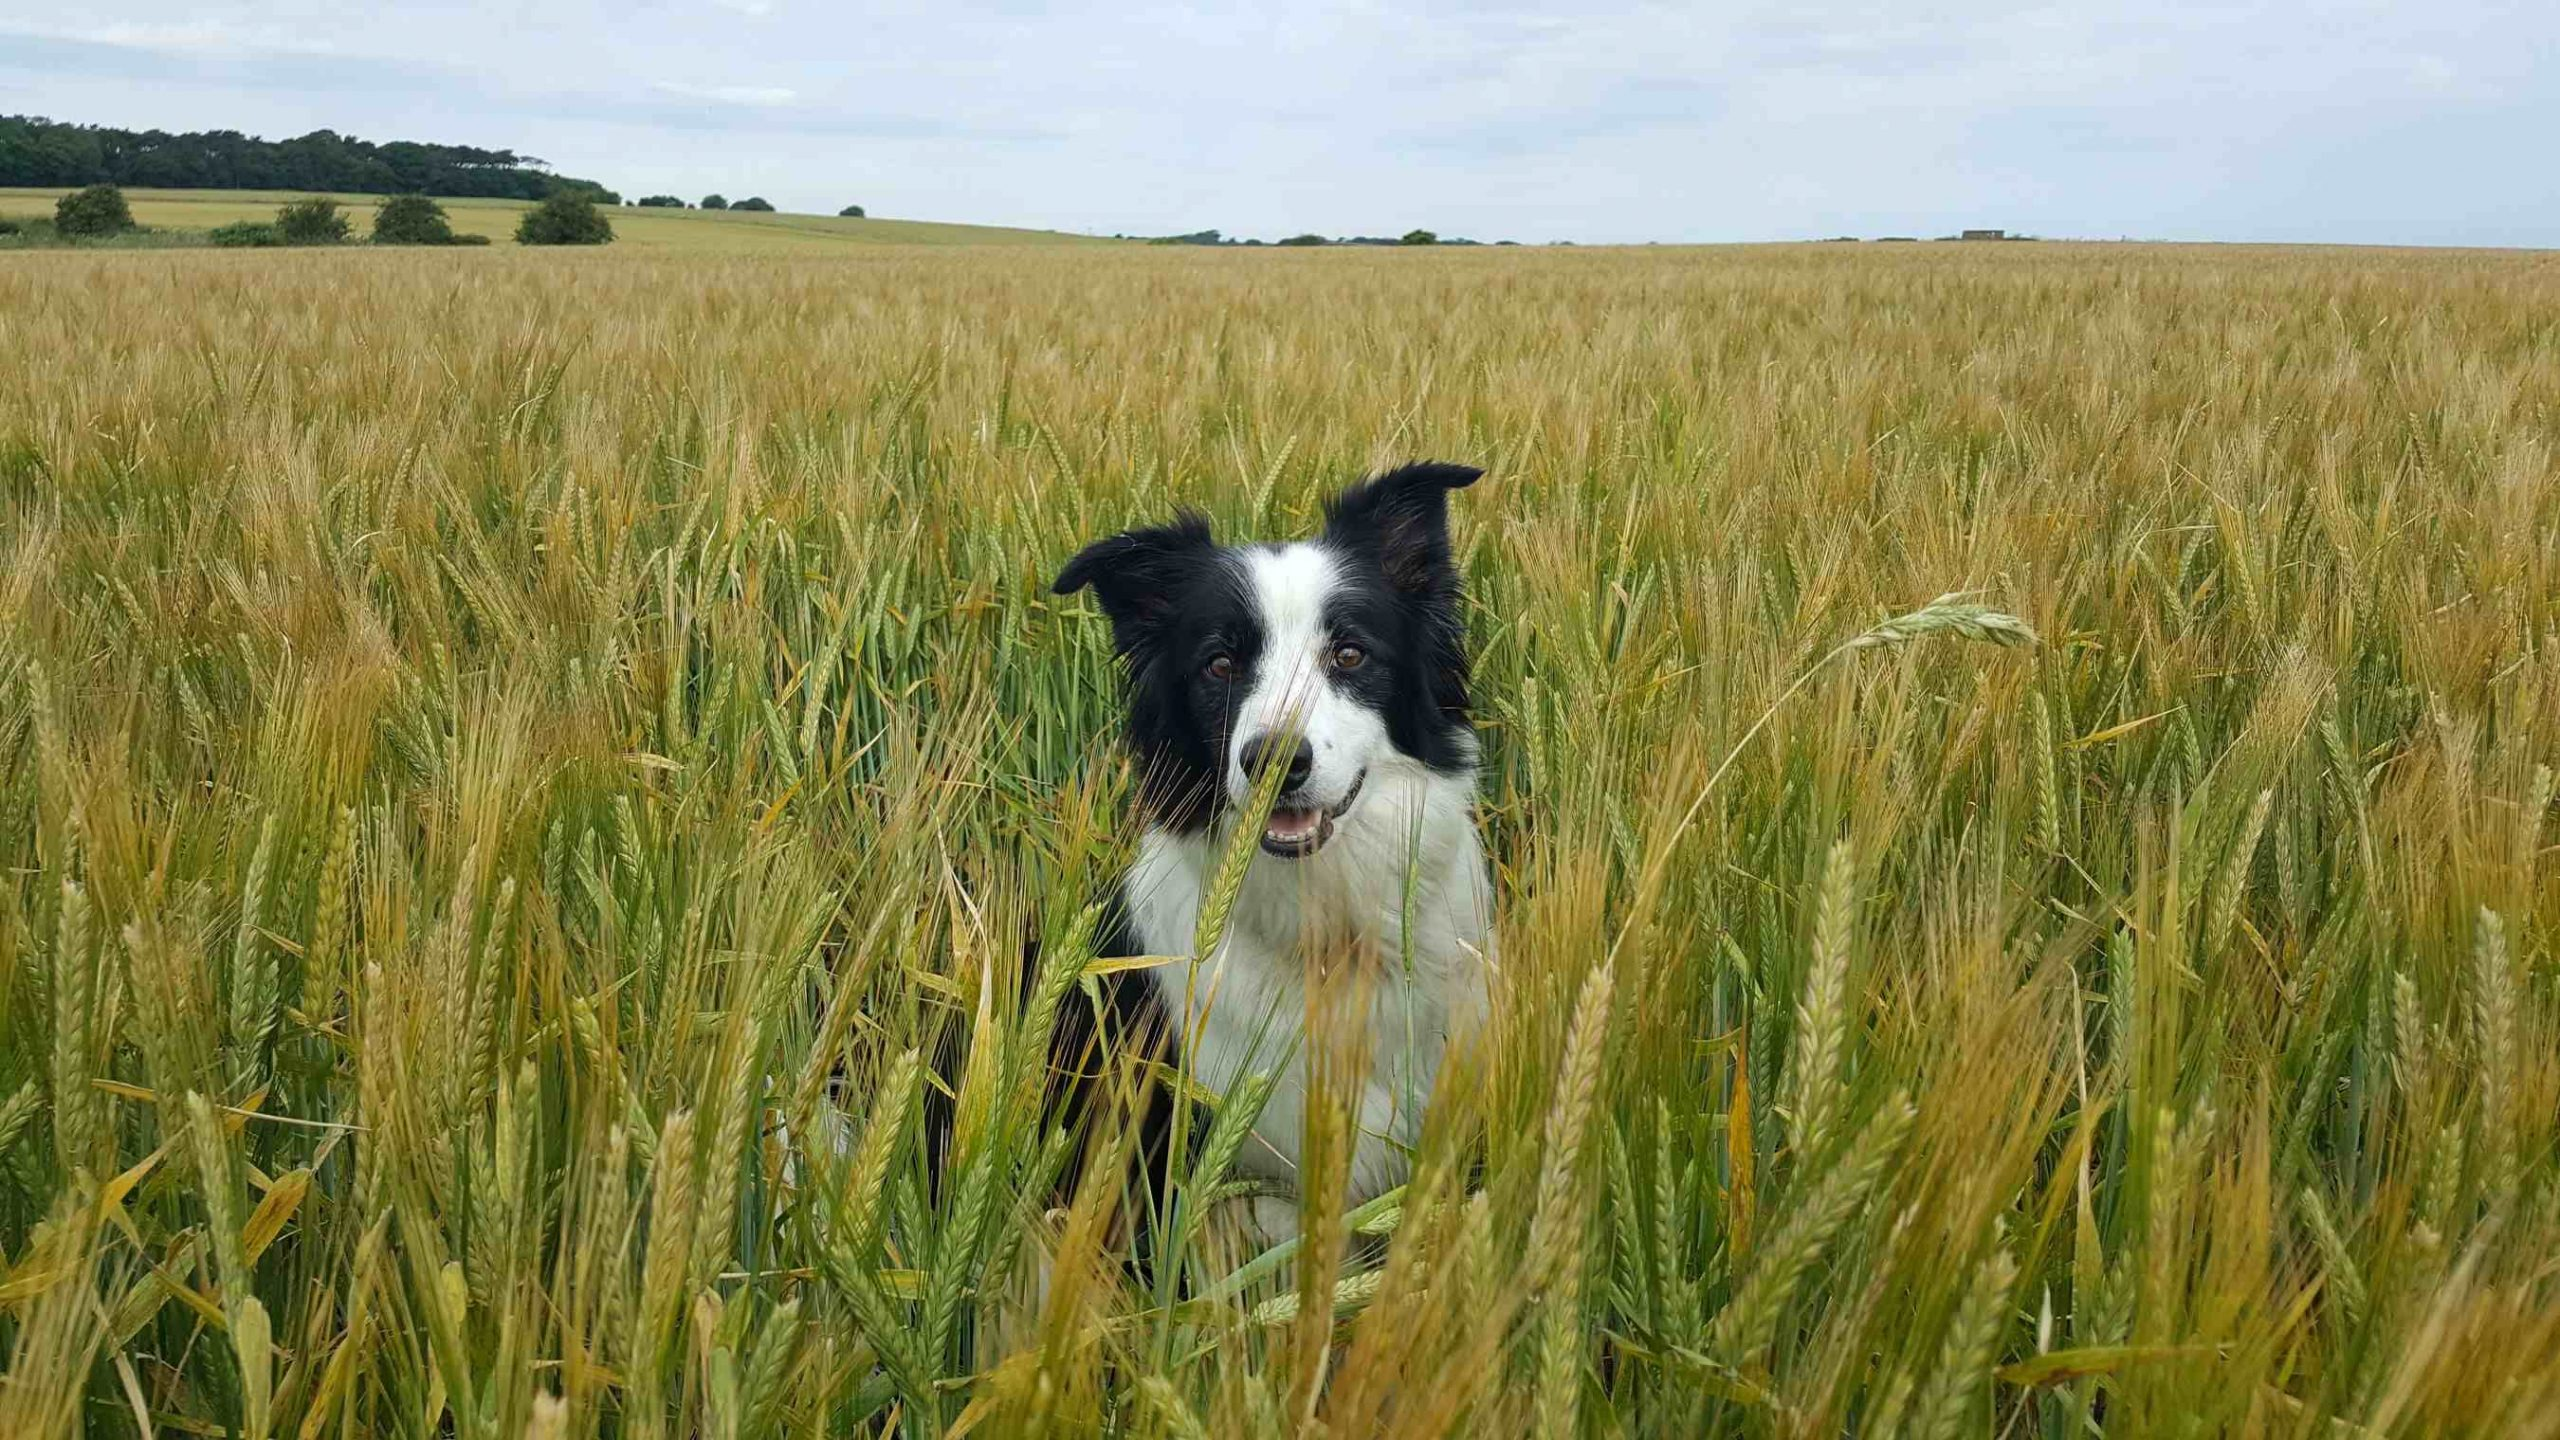 Border collie in grass field smiling cloudy day barking mad dog sitting home boarding